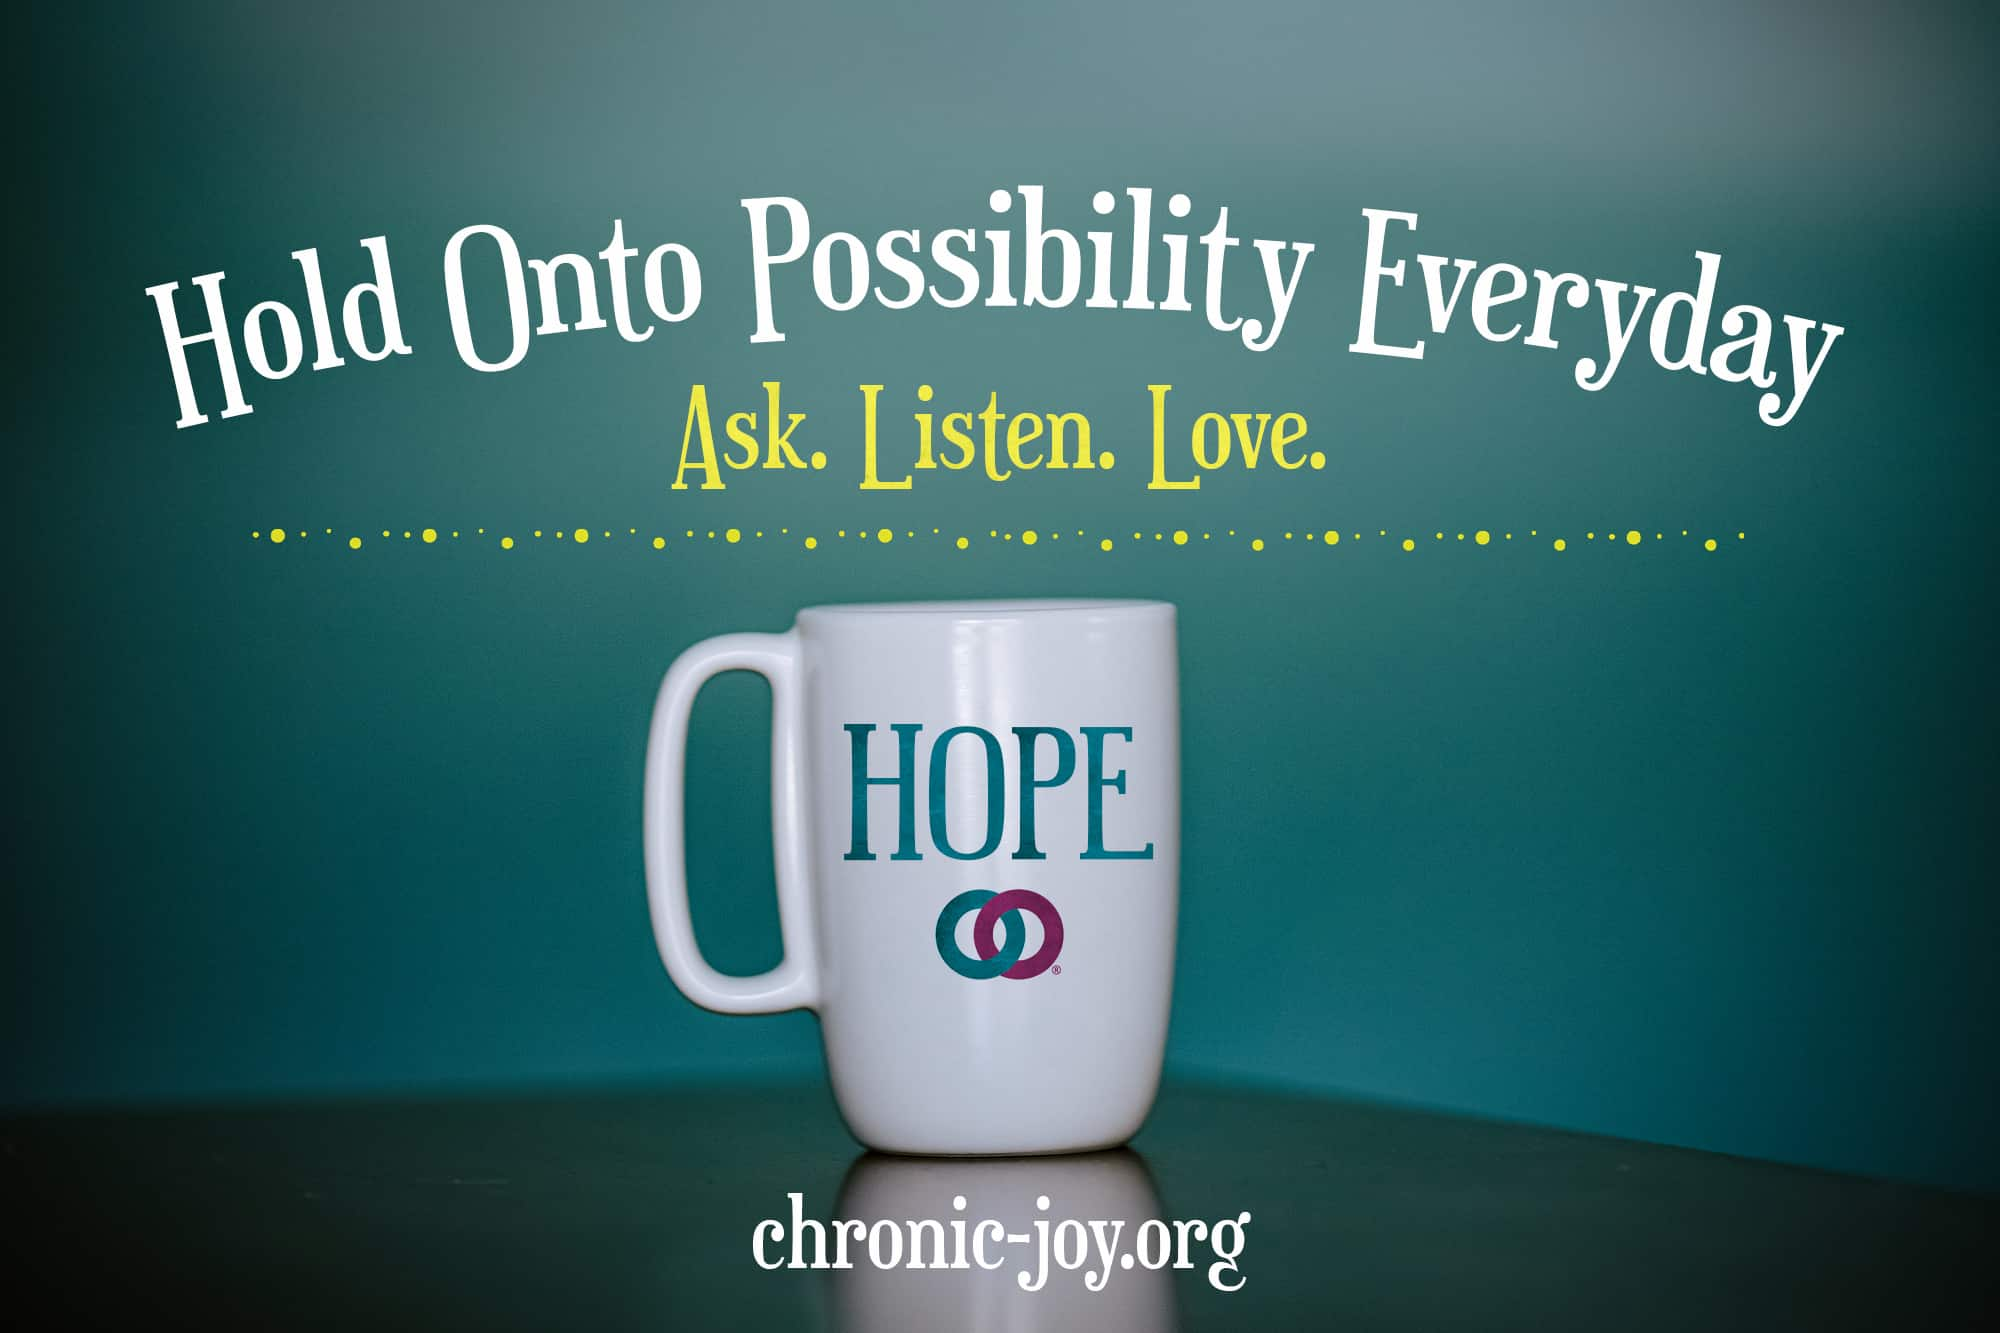 Hold Onto Possibility Everyday - Ask. Listen. Love. Prevent Suicide One Precious Life at a Time.